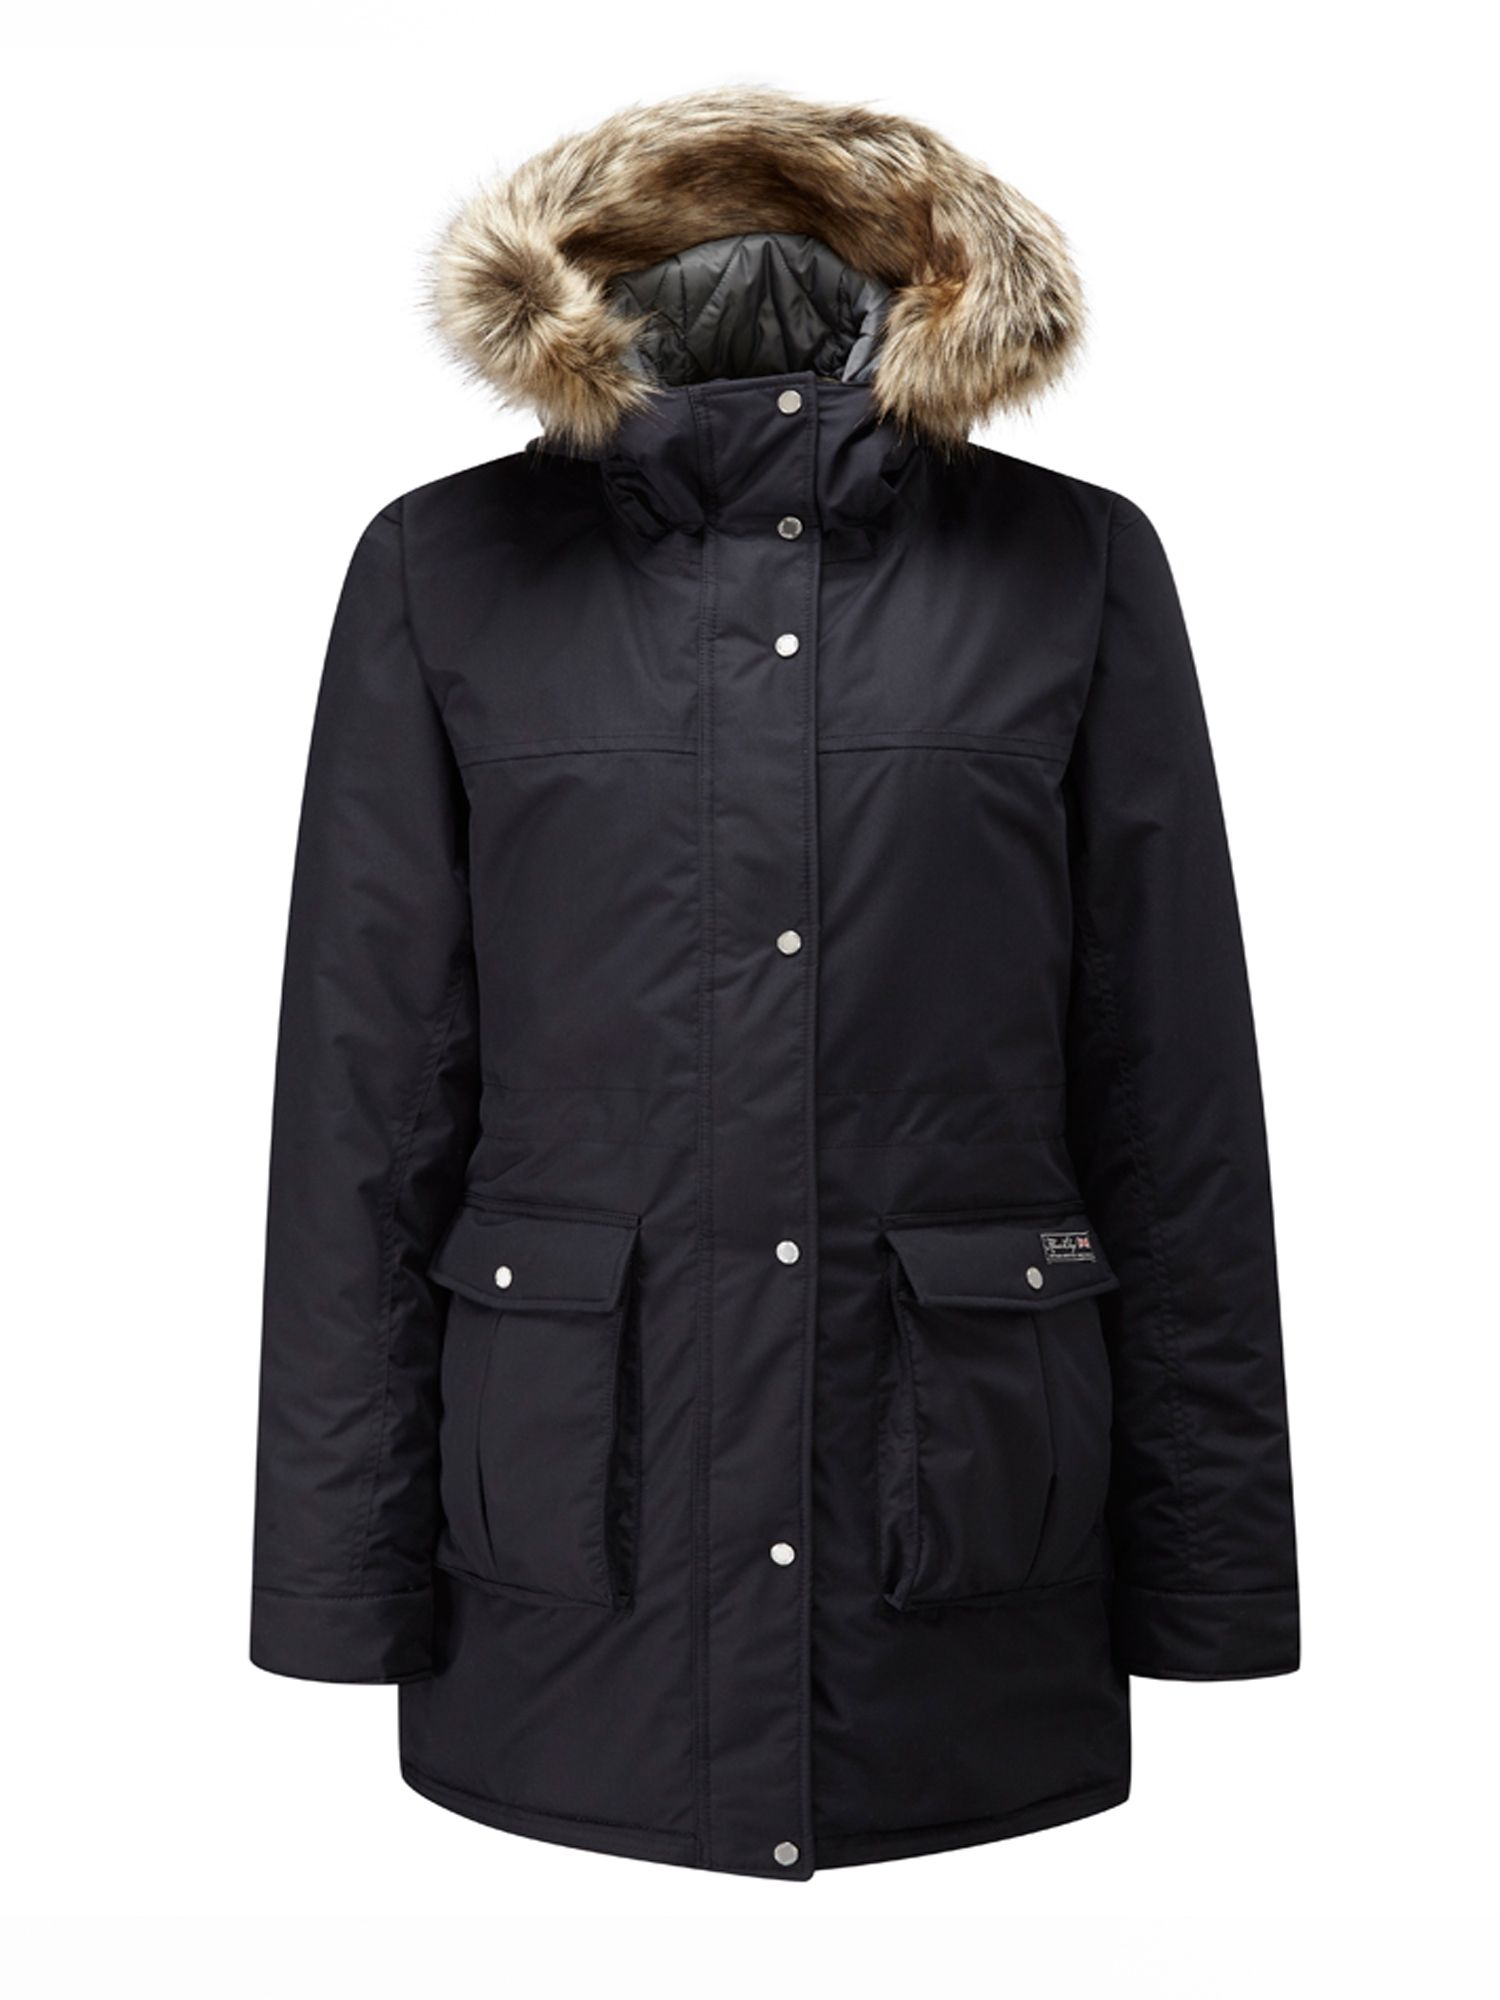 Henri Lloyd Saige Heavy Down Parka, Black